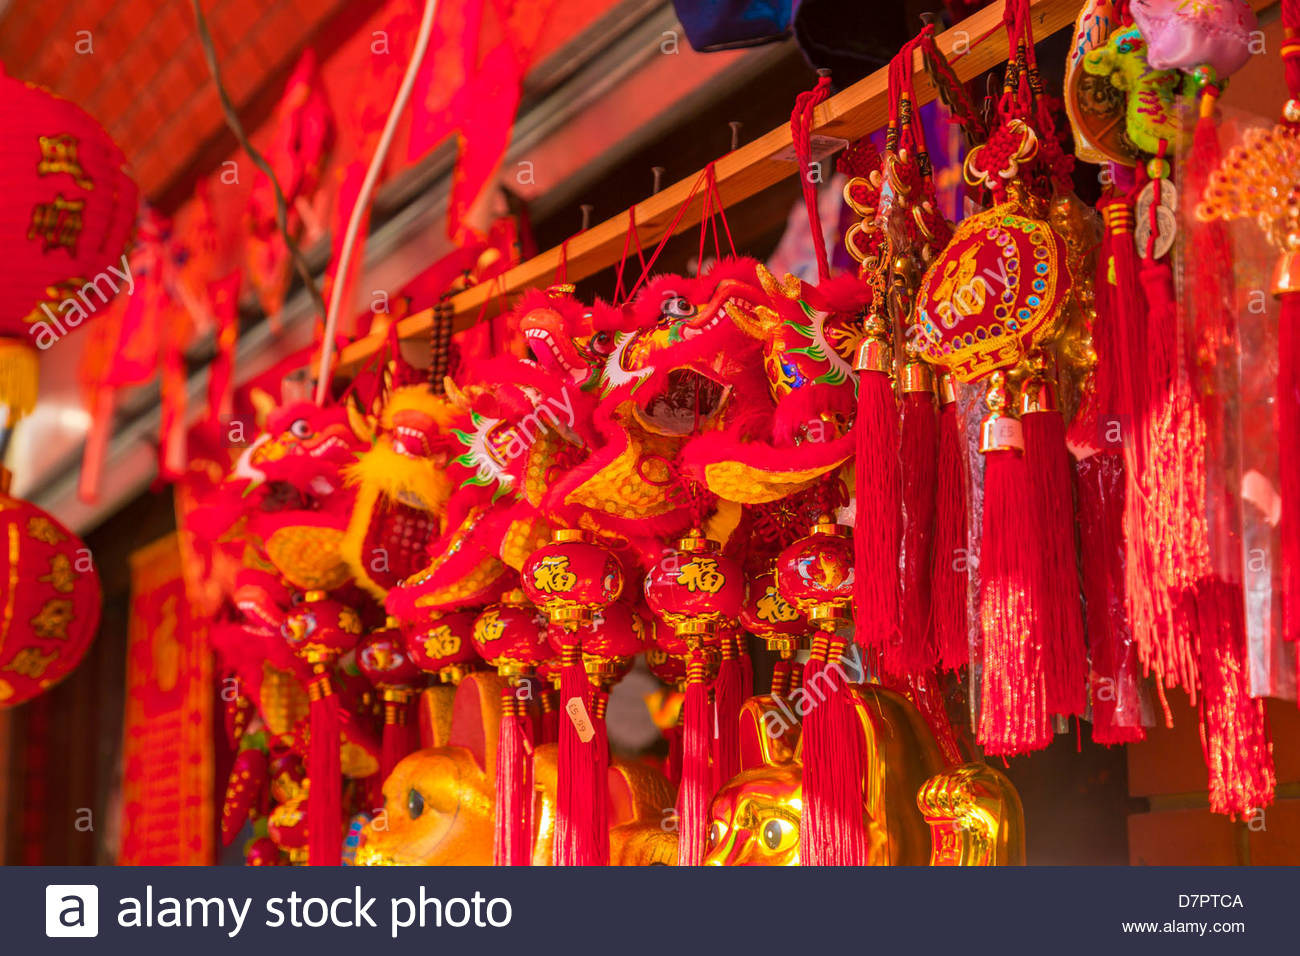 Traditional Chinese decorations a the shop in London's China Town, London,  United Kingdom